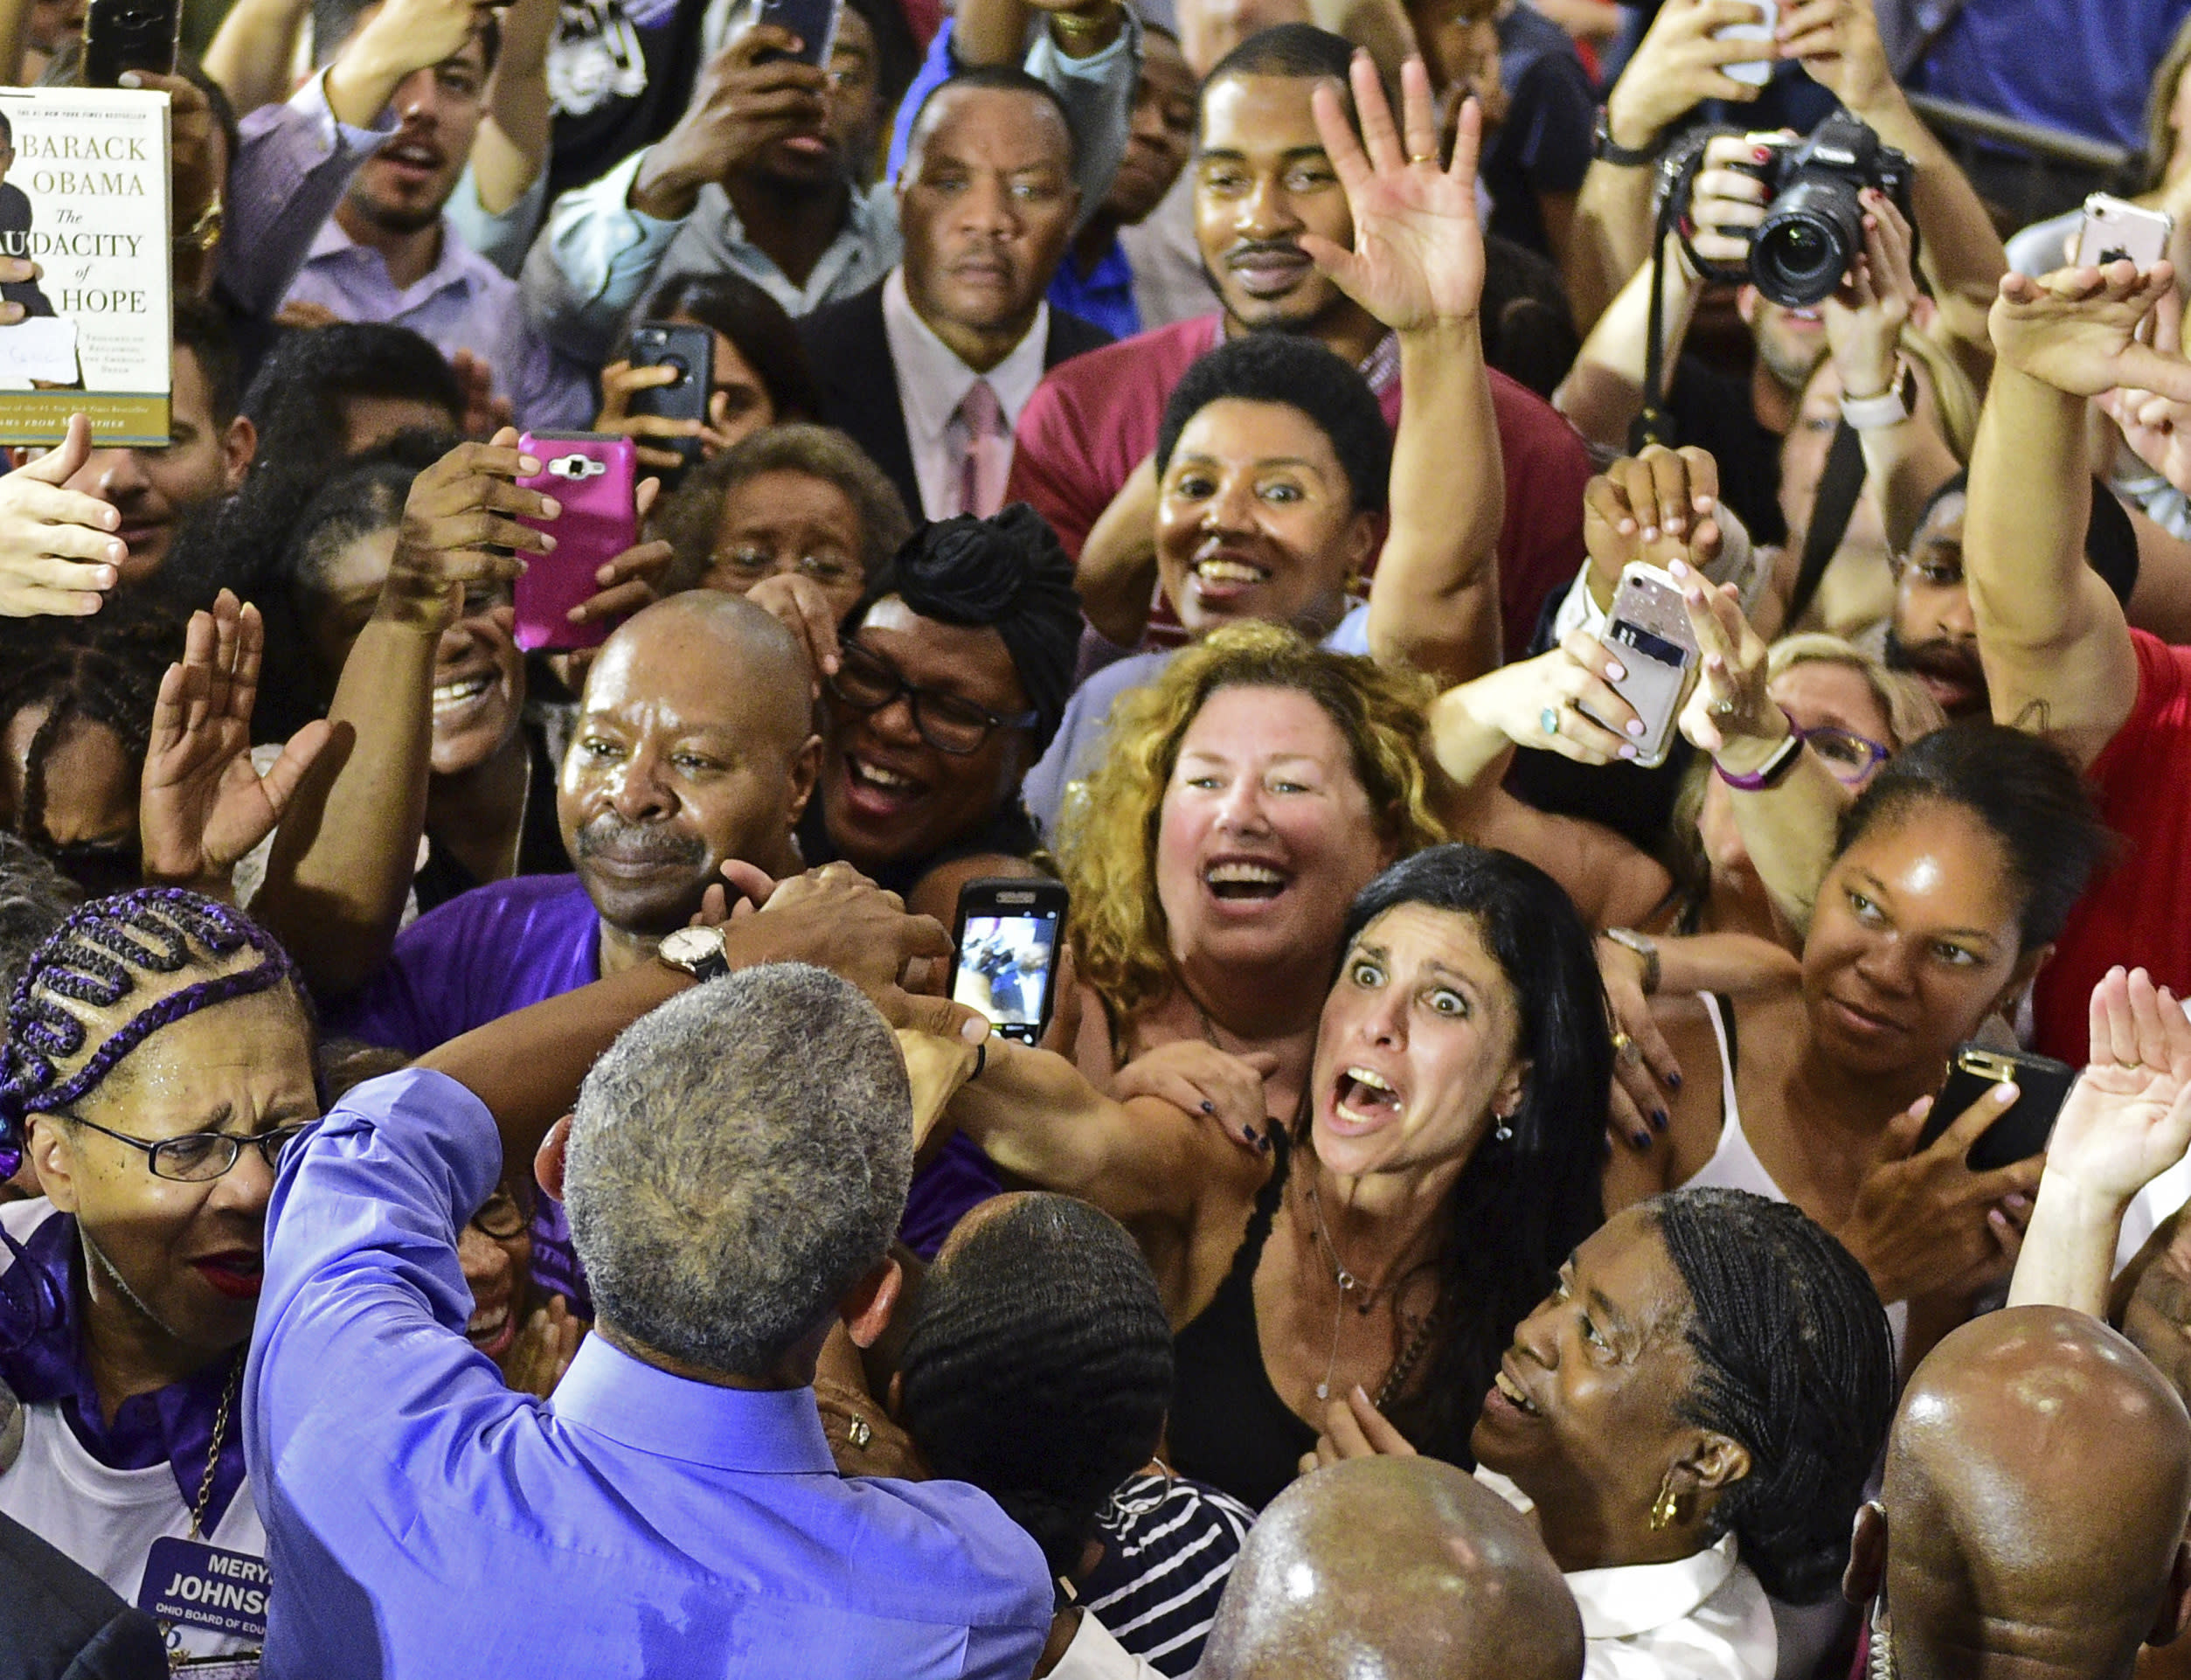 Former President Barack Obama shakes hands with members of the audience as he campaigns in support of Ohio gubernatorial candidate Richard Cordray, Thursday, Sept. 13, 2018, in Cleveland. (AP Photo/David Dermer)